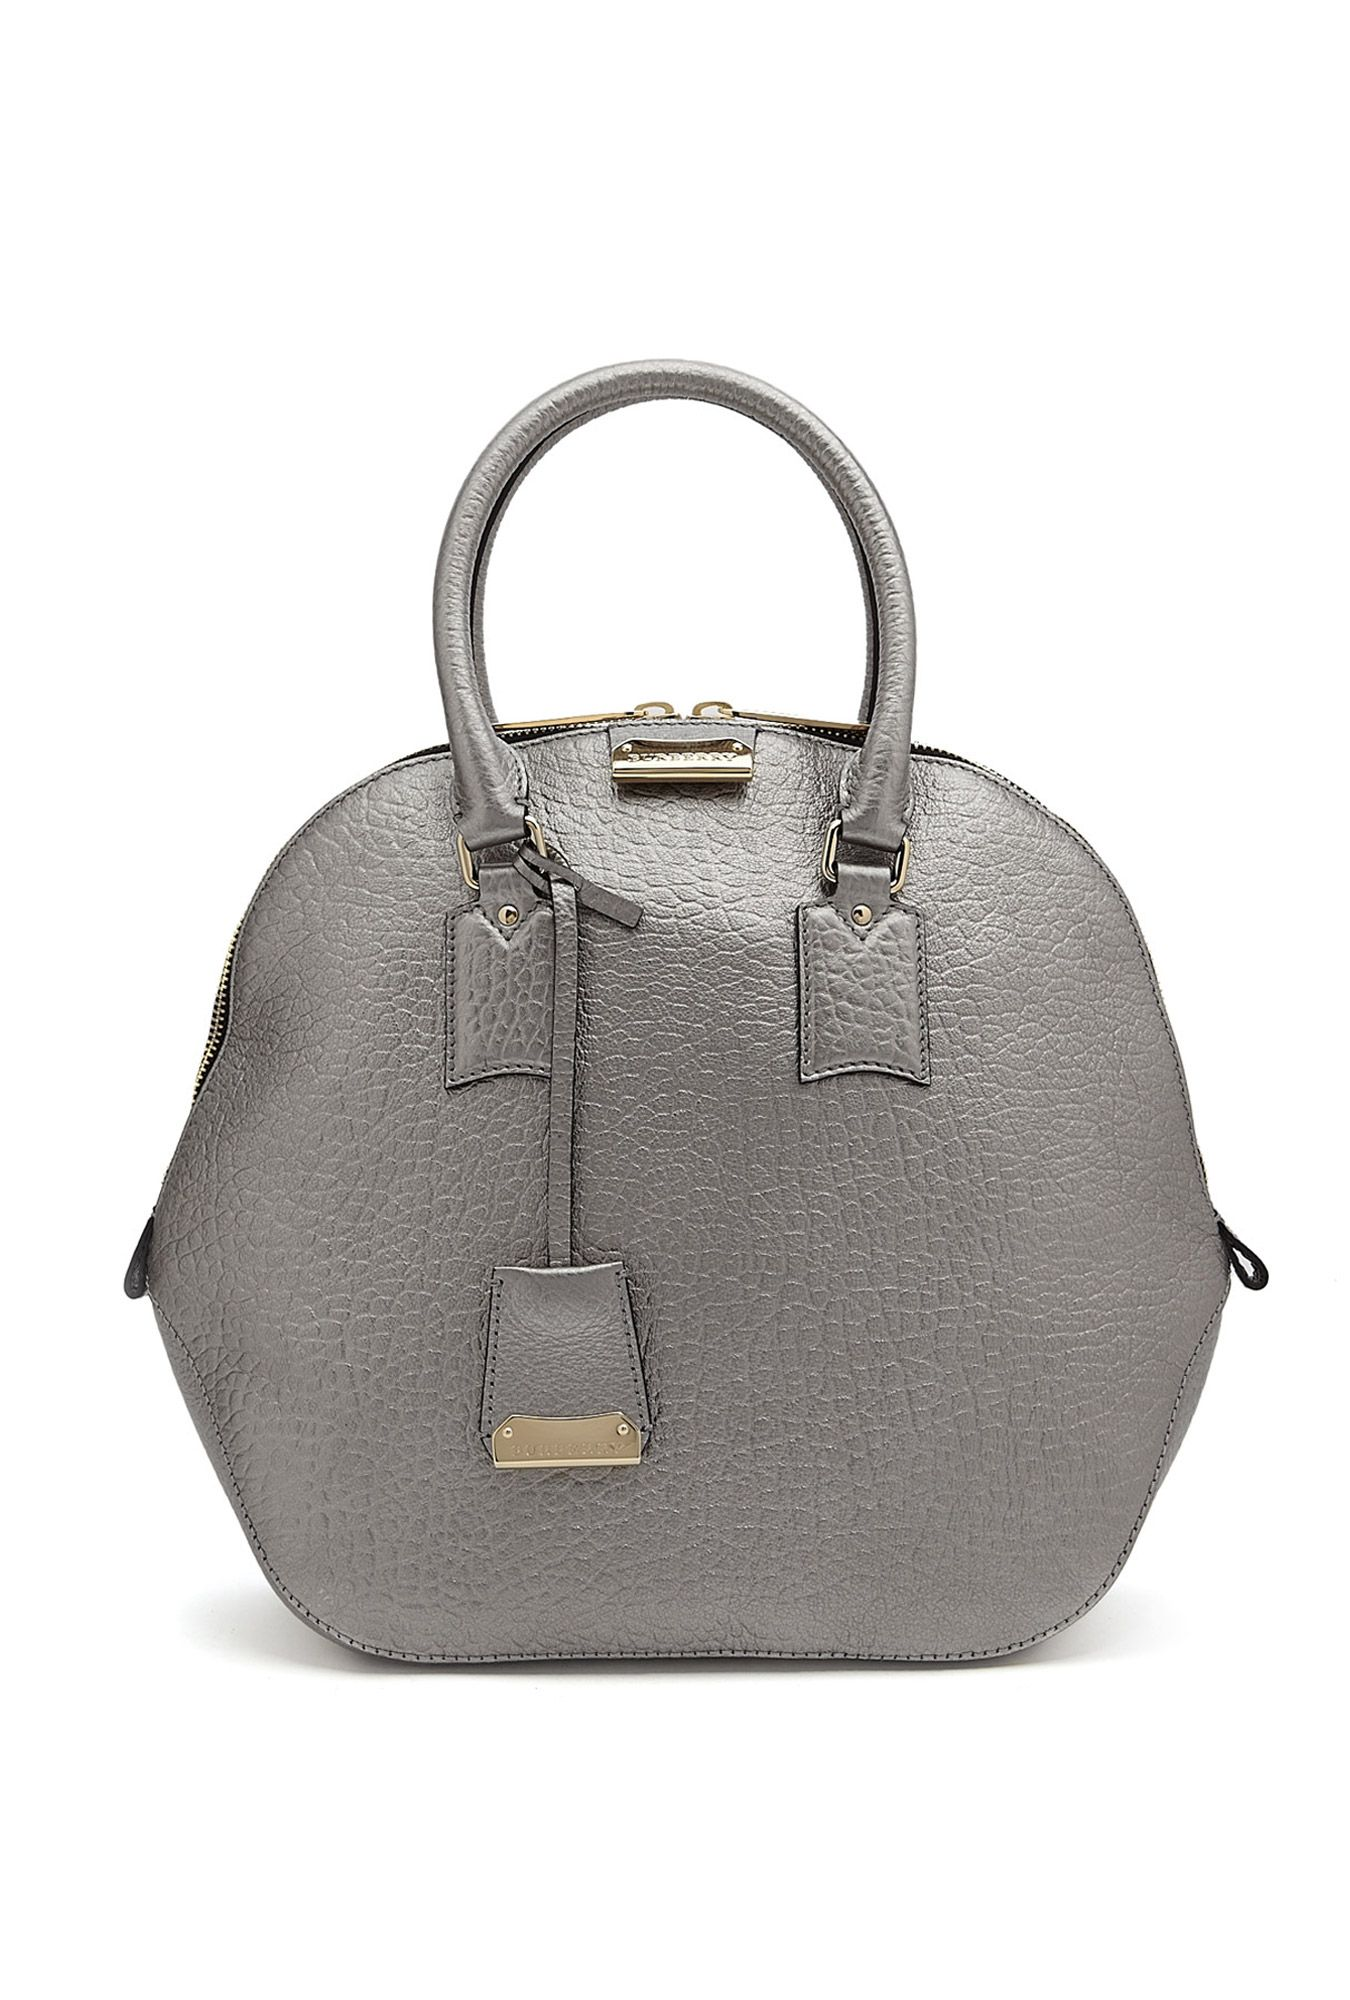 d87e87dcc503 Silver Leather Medium Orchard Bowling Bag by Burberry